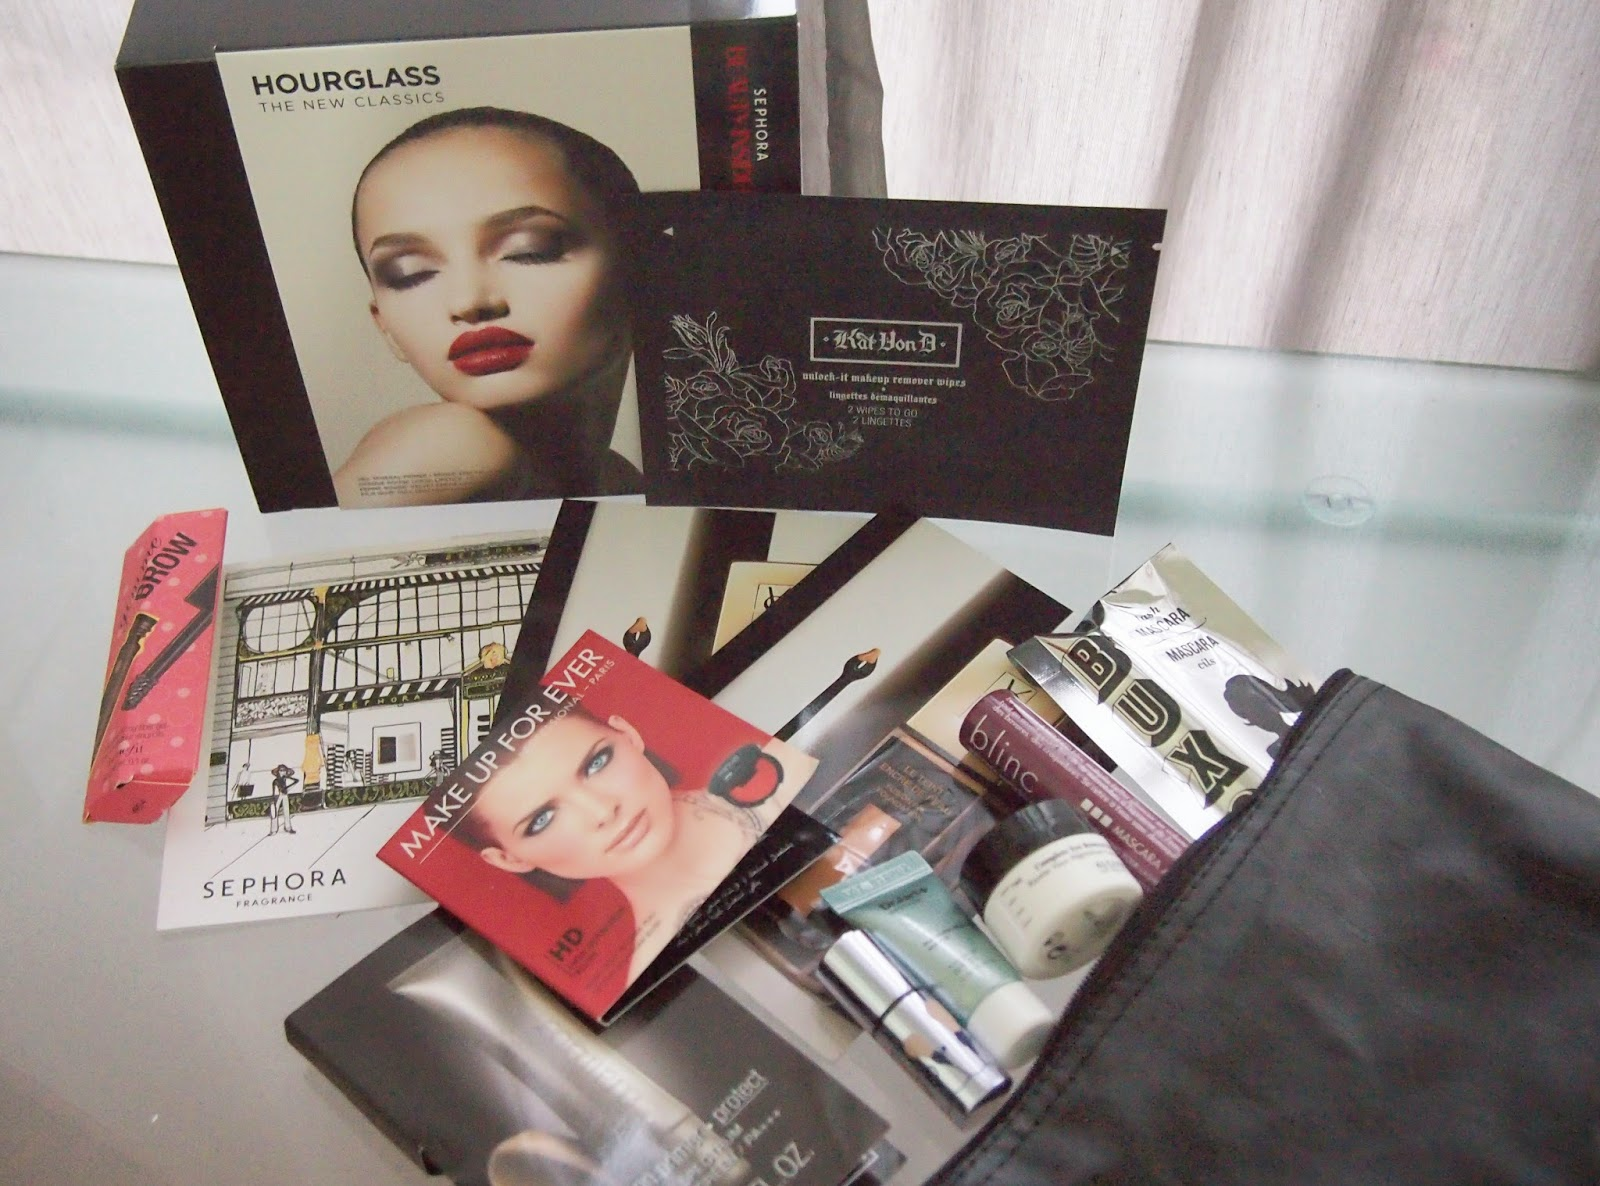 Shrinking Wallet: Yet another (mini) Sephora haul